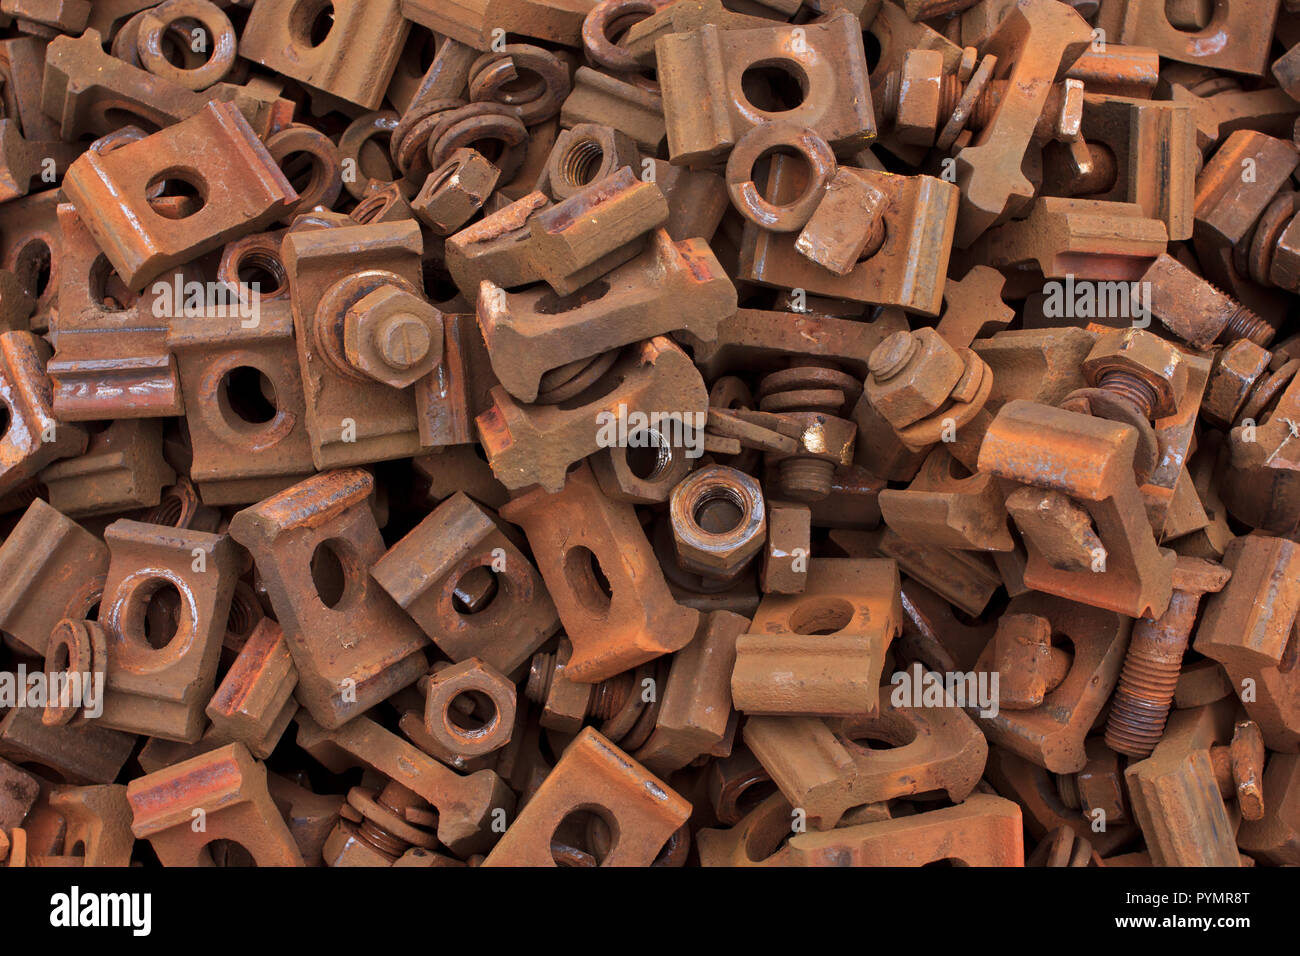 Rusty train track nuts, bolts, washers and clasps Stock